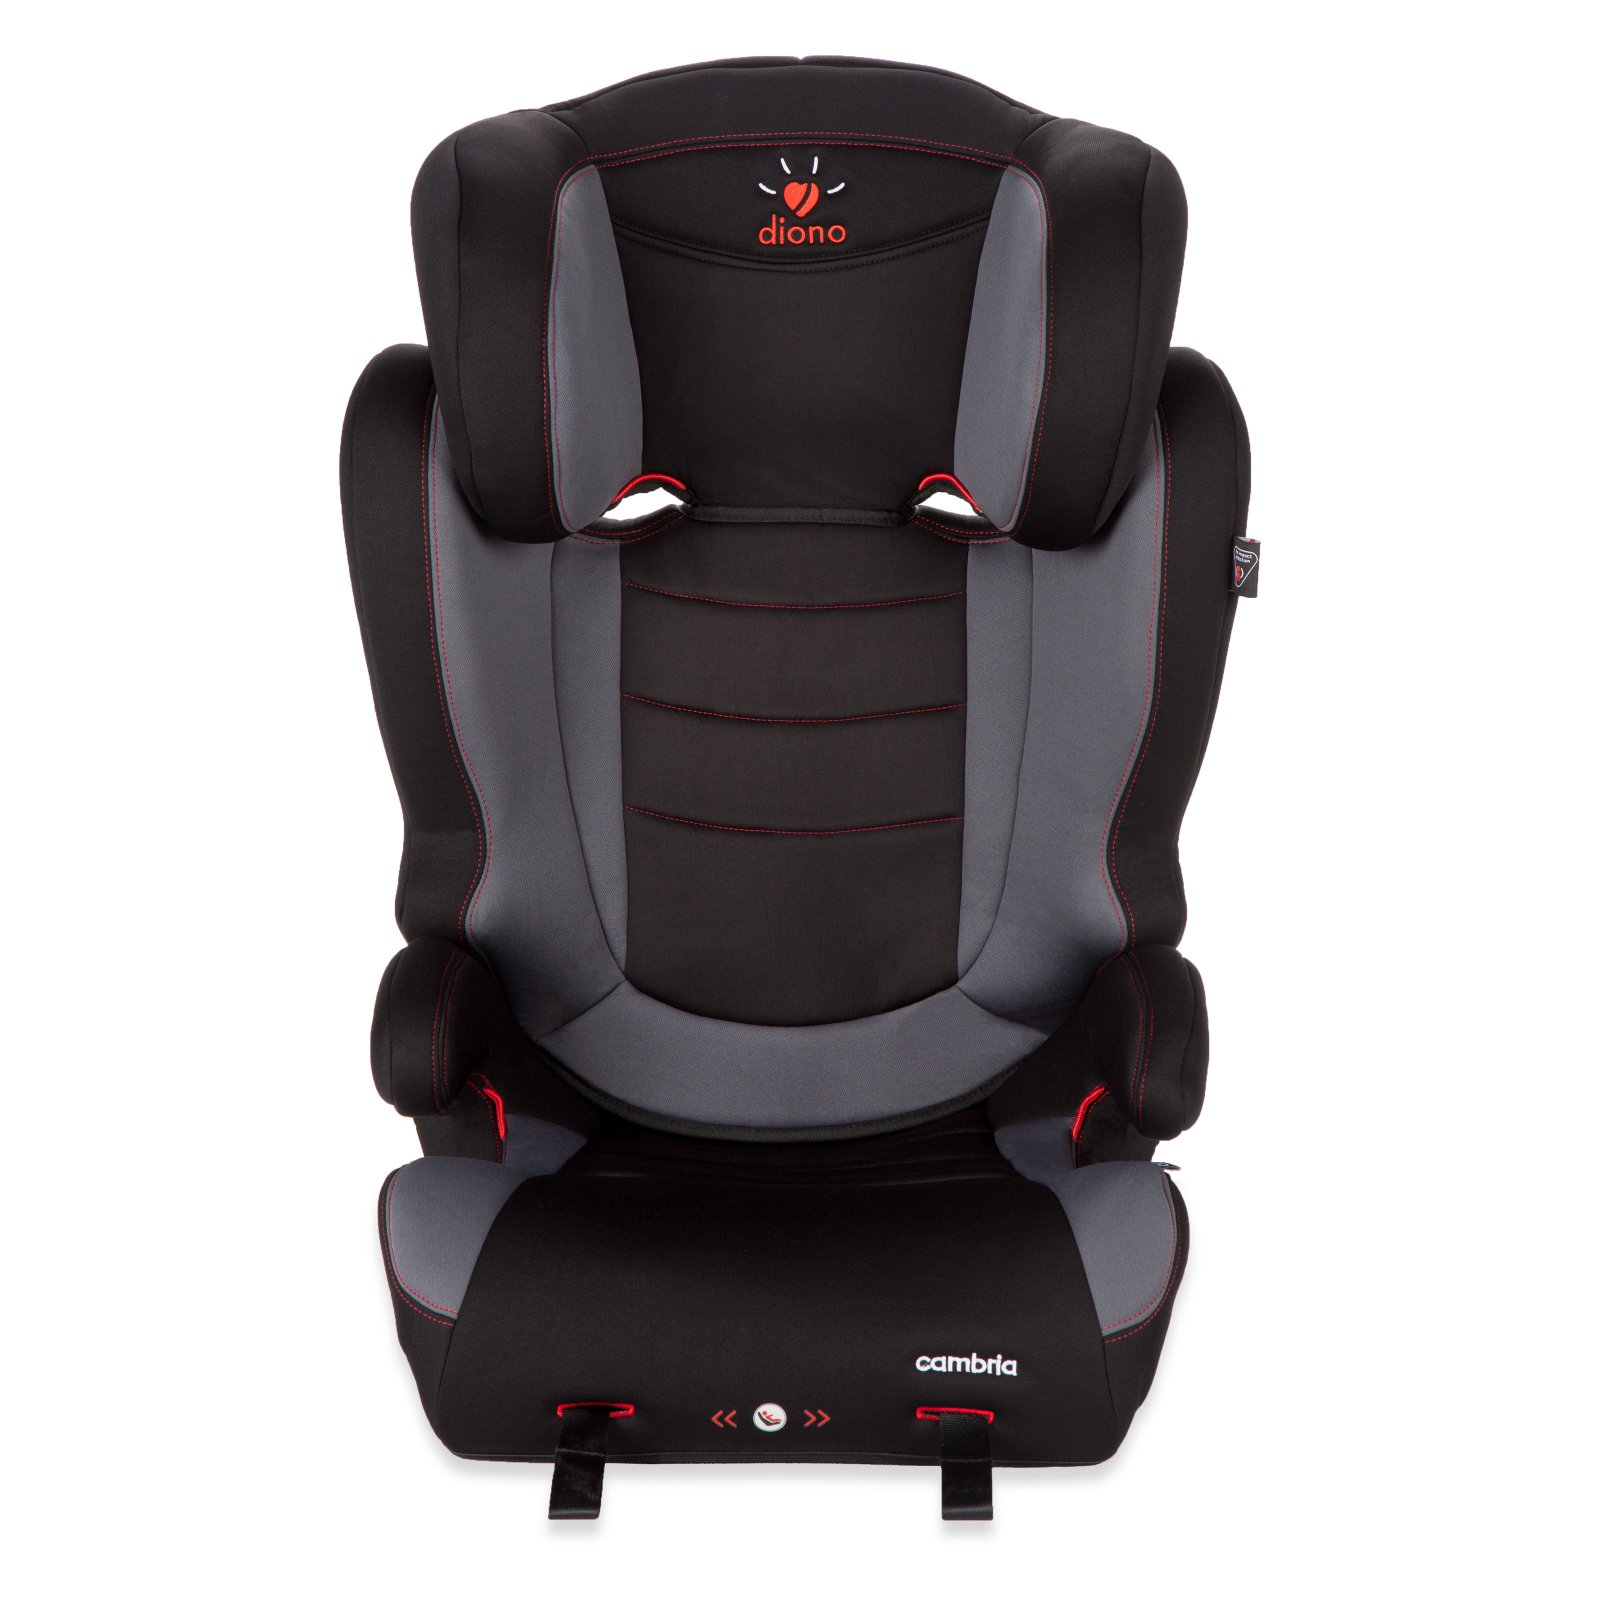 Diono Cambria High Back Booster Seat - Graphite